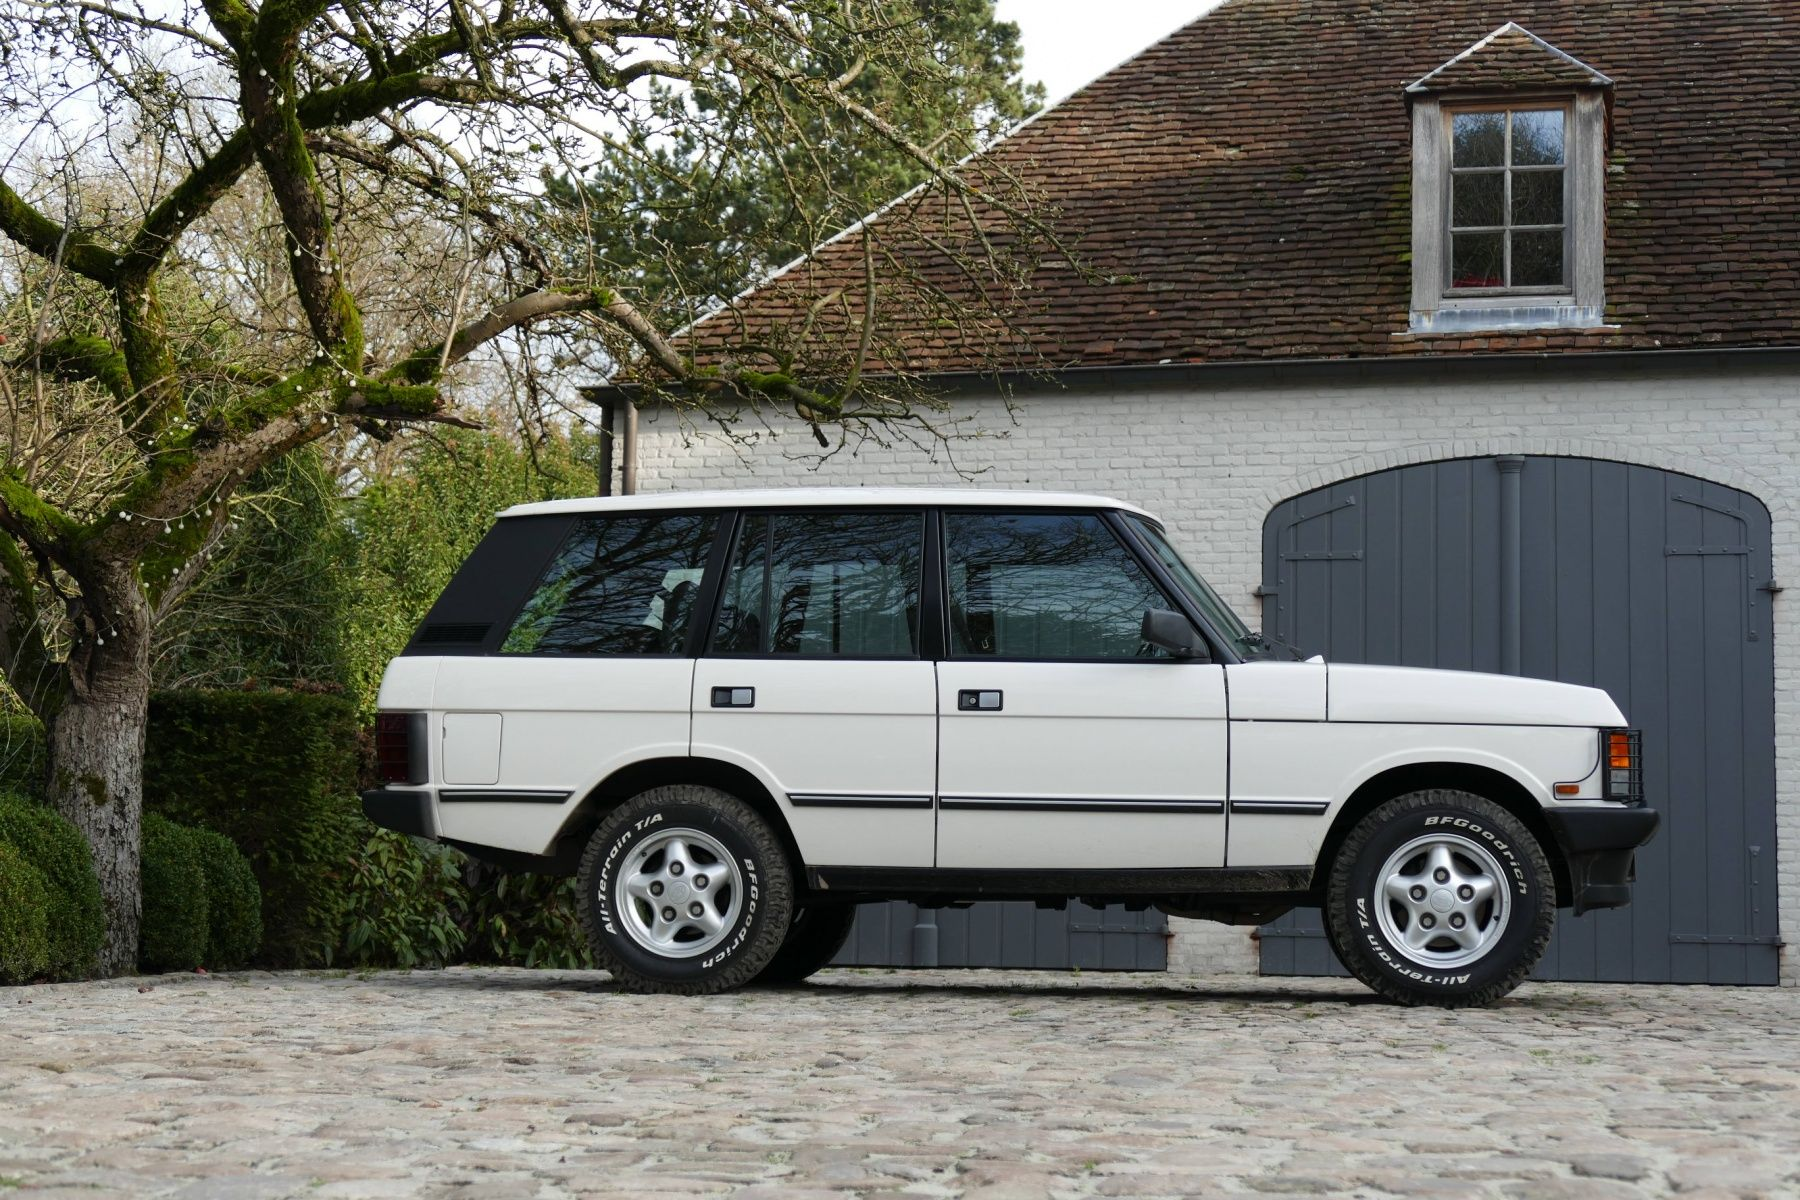 1991 Land Rover Range Rover Classic 3 9 V8 Sunroof Classic Driver Market Range Rover Classic Land Rover For Sale Land Rover